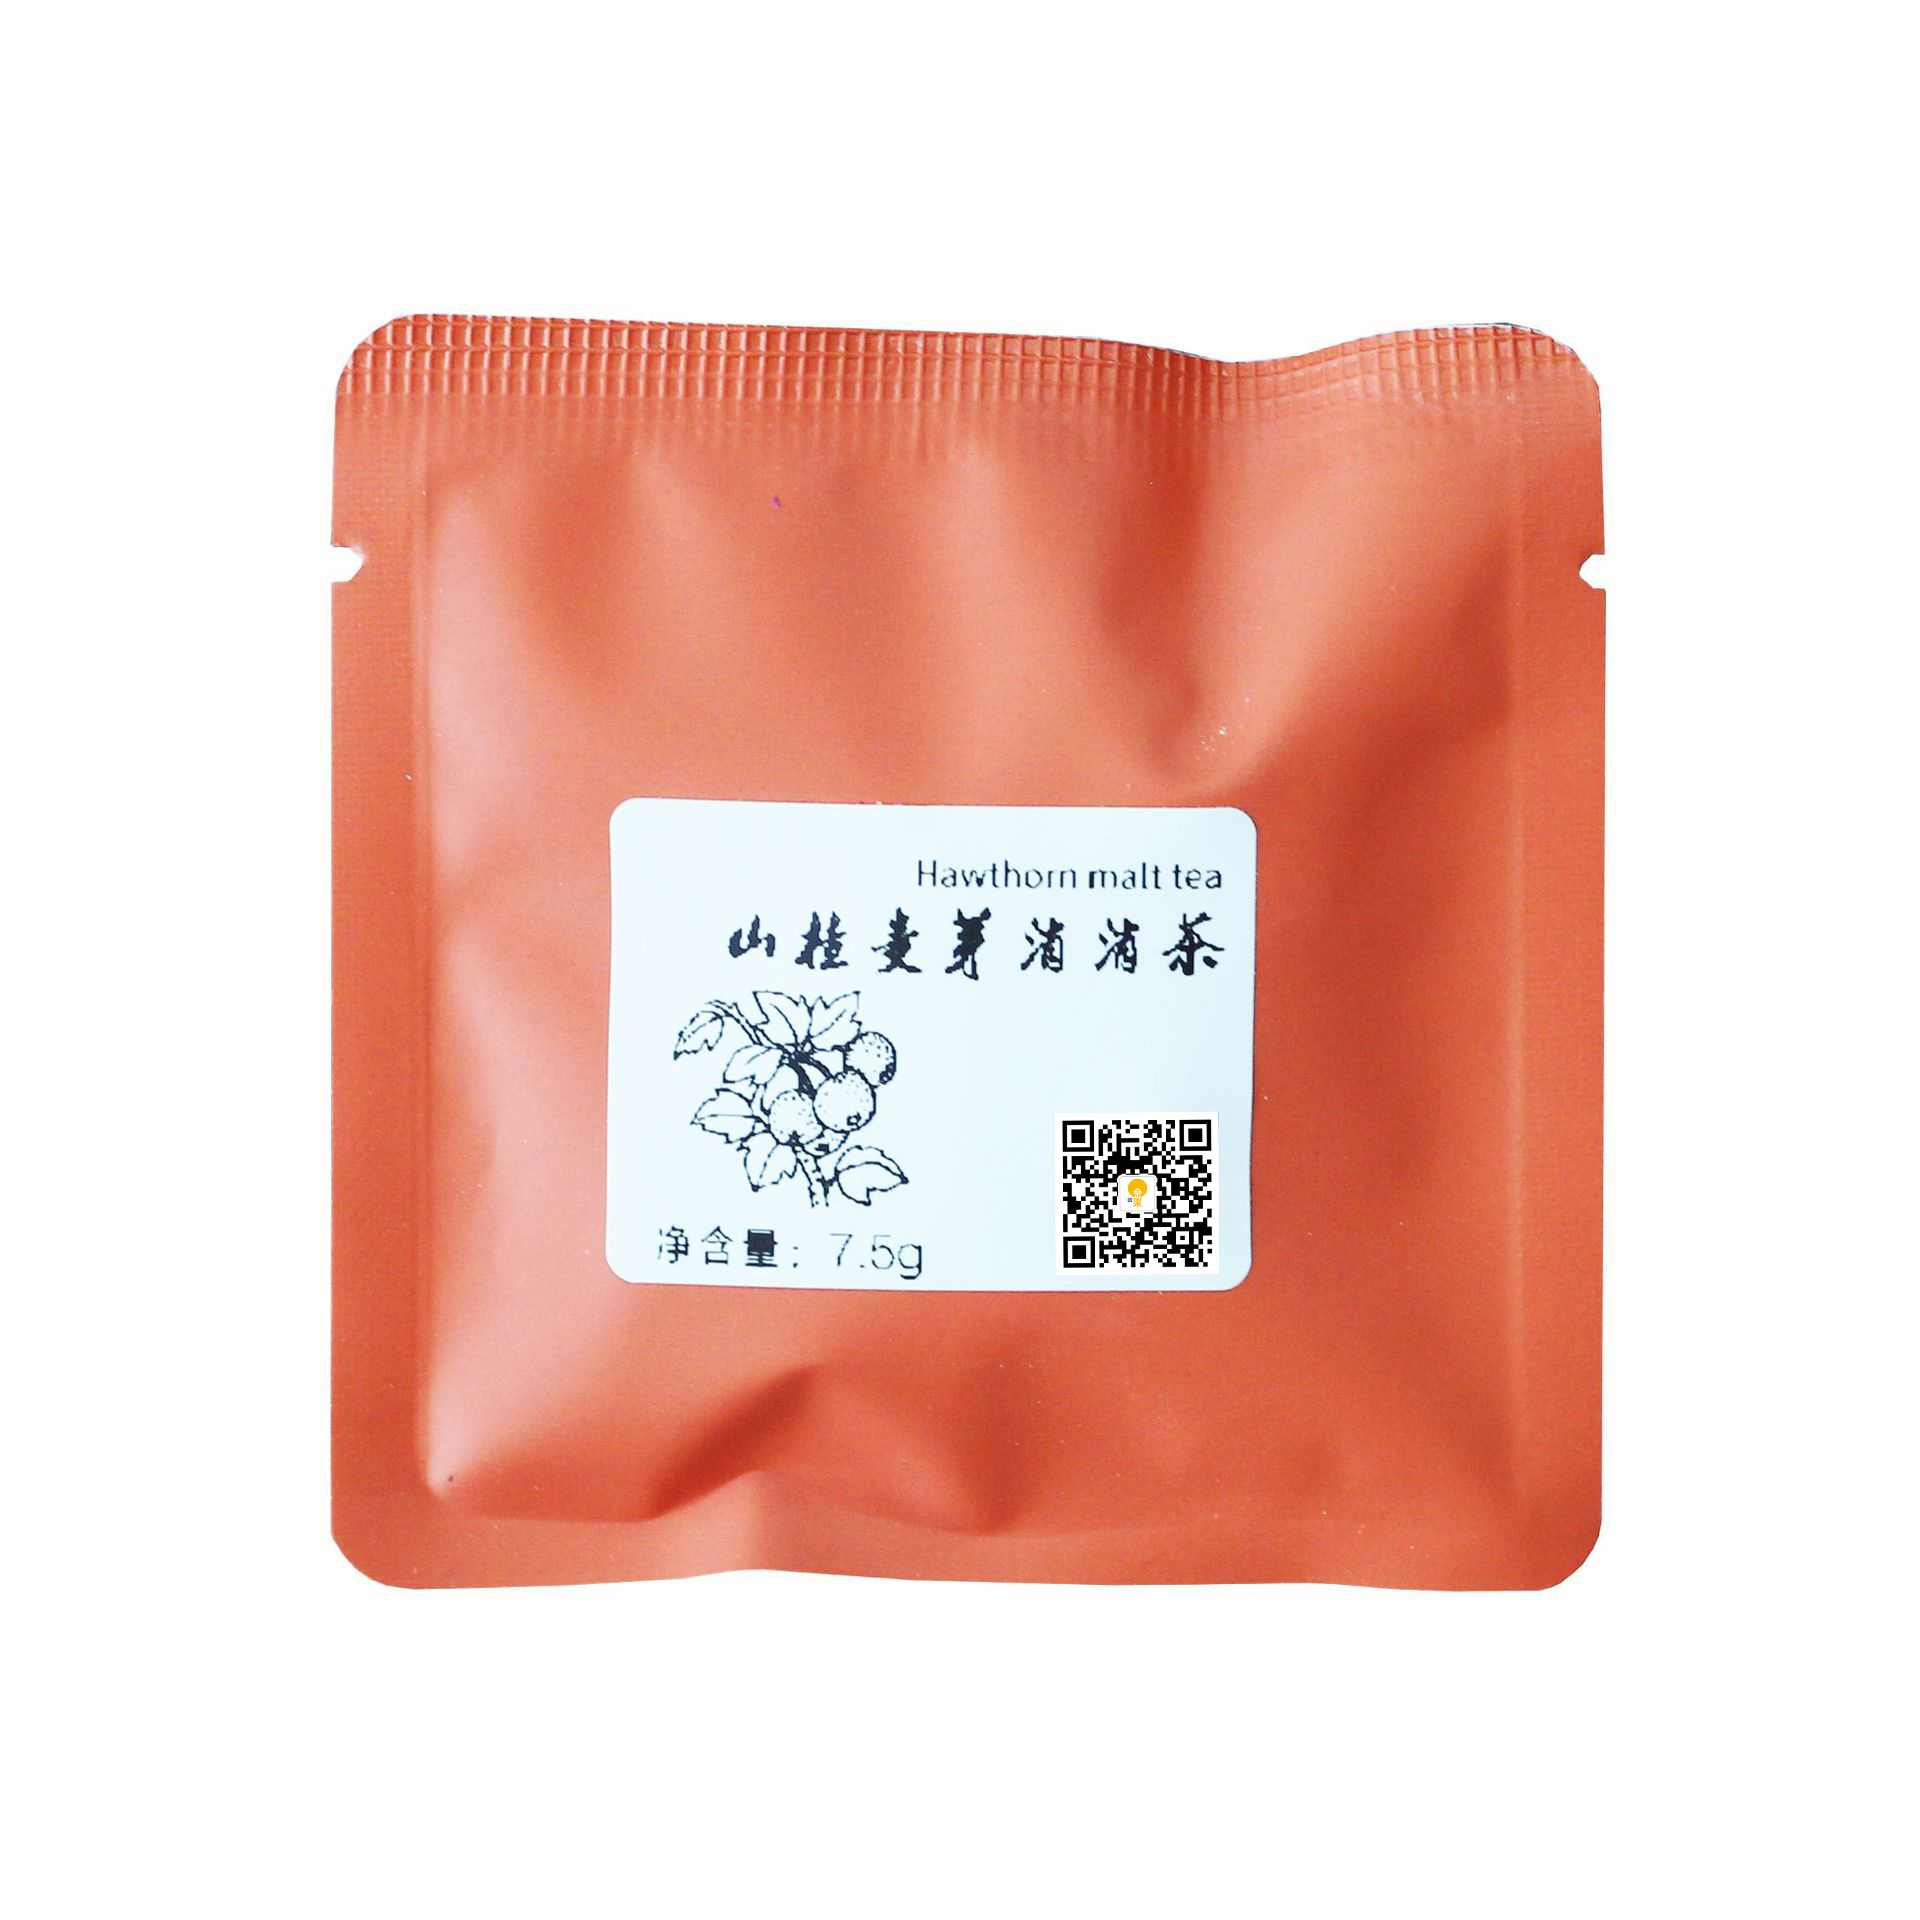 2021 New Product Wholesale Organic Dried Flower Tea Hawthorn Blooming Detox Herbal Tea Enhancing Digestion Flower Tea - 4uTea | 4uTea.com